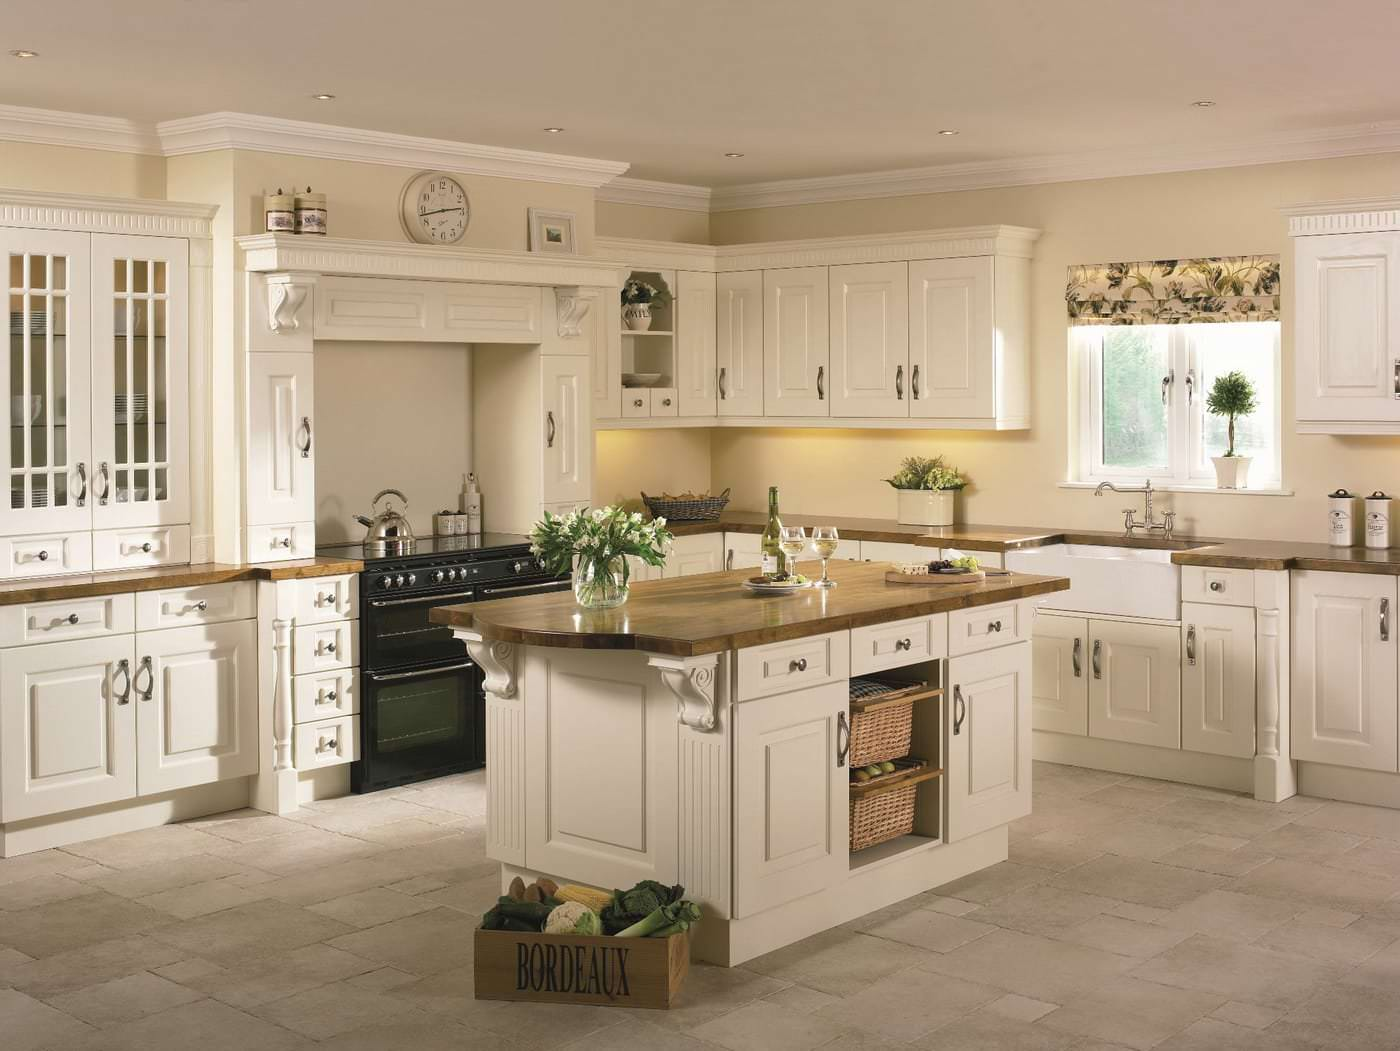 Awesome cream kitchens cream kitchen photos for design inspiration for your kitchen remodeling yovtndl